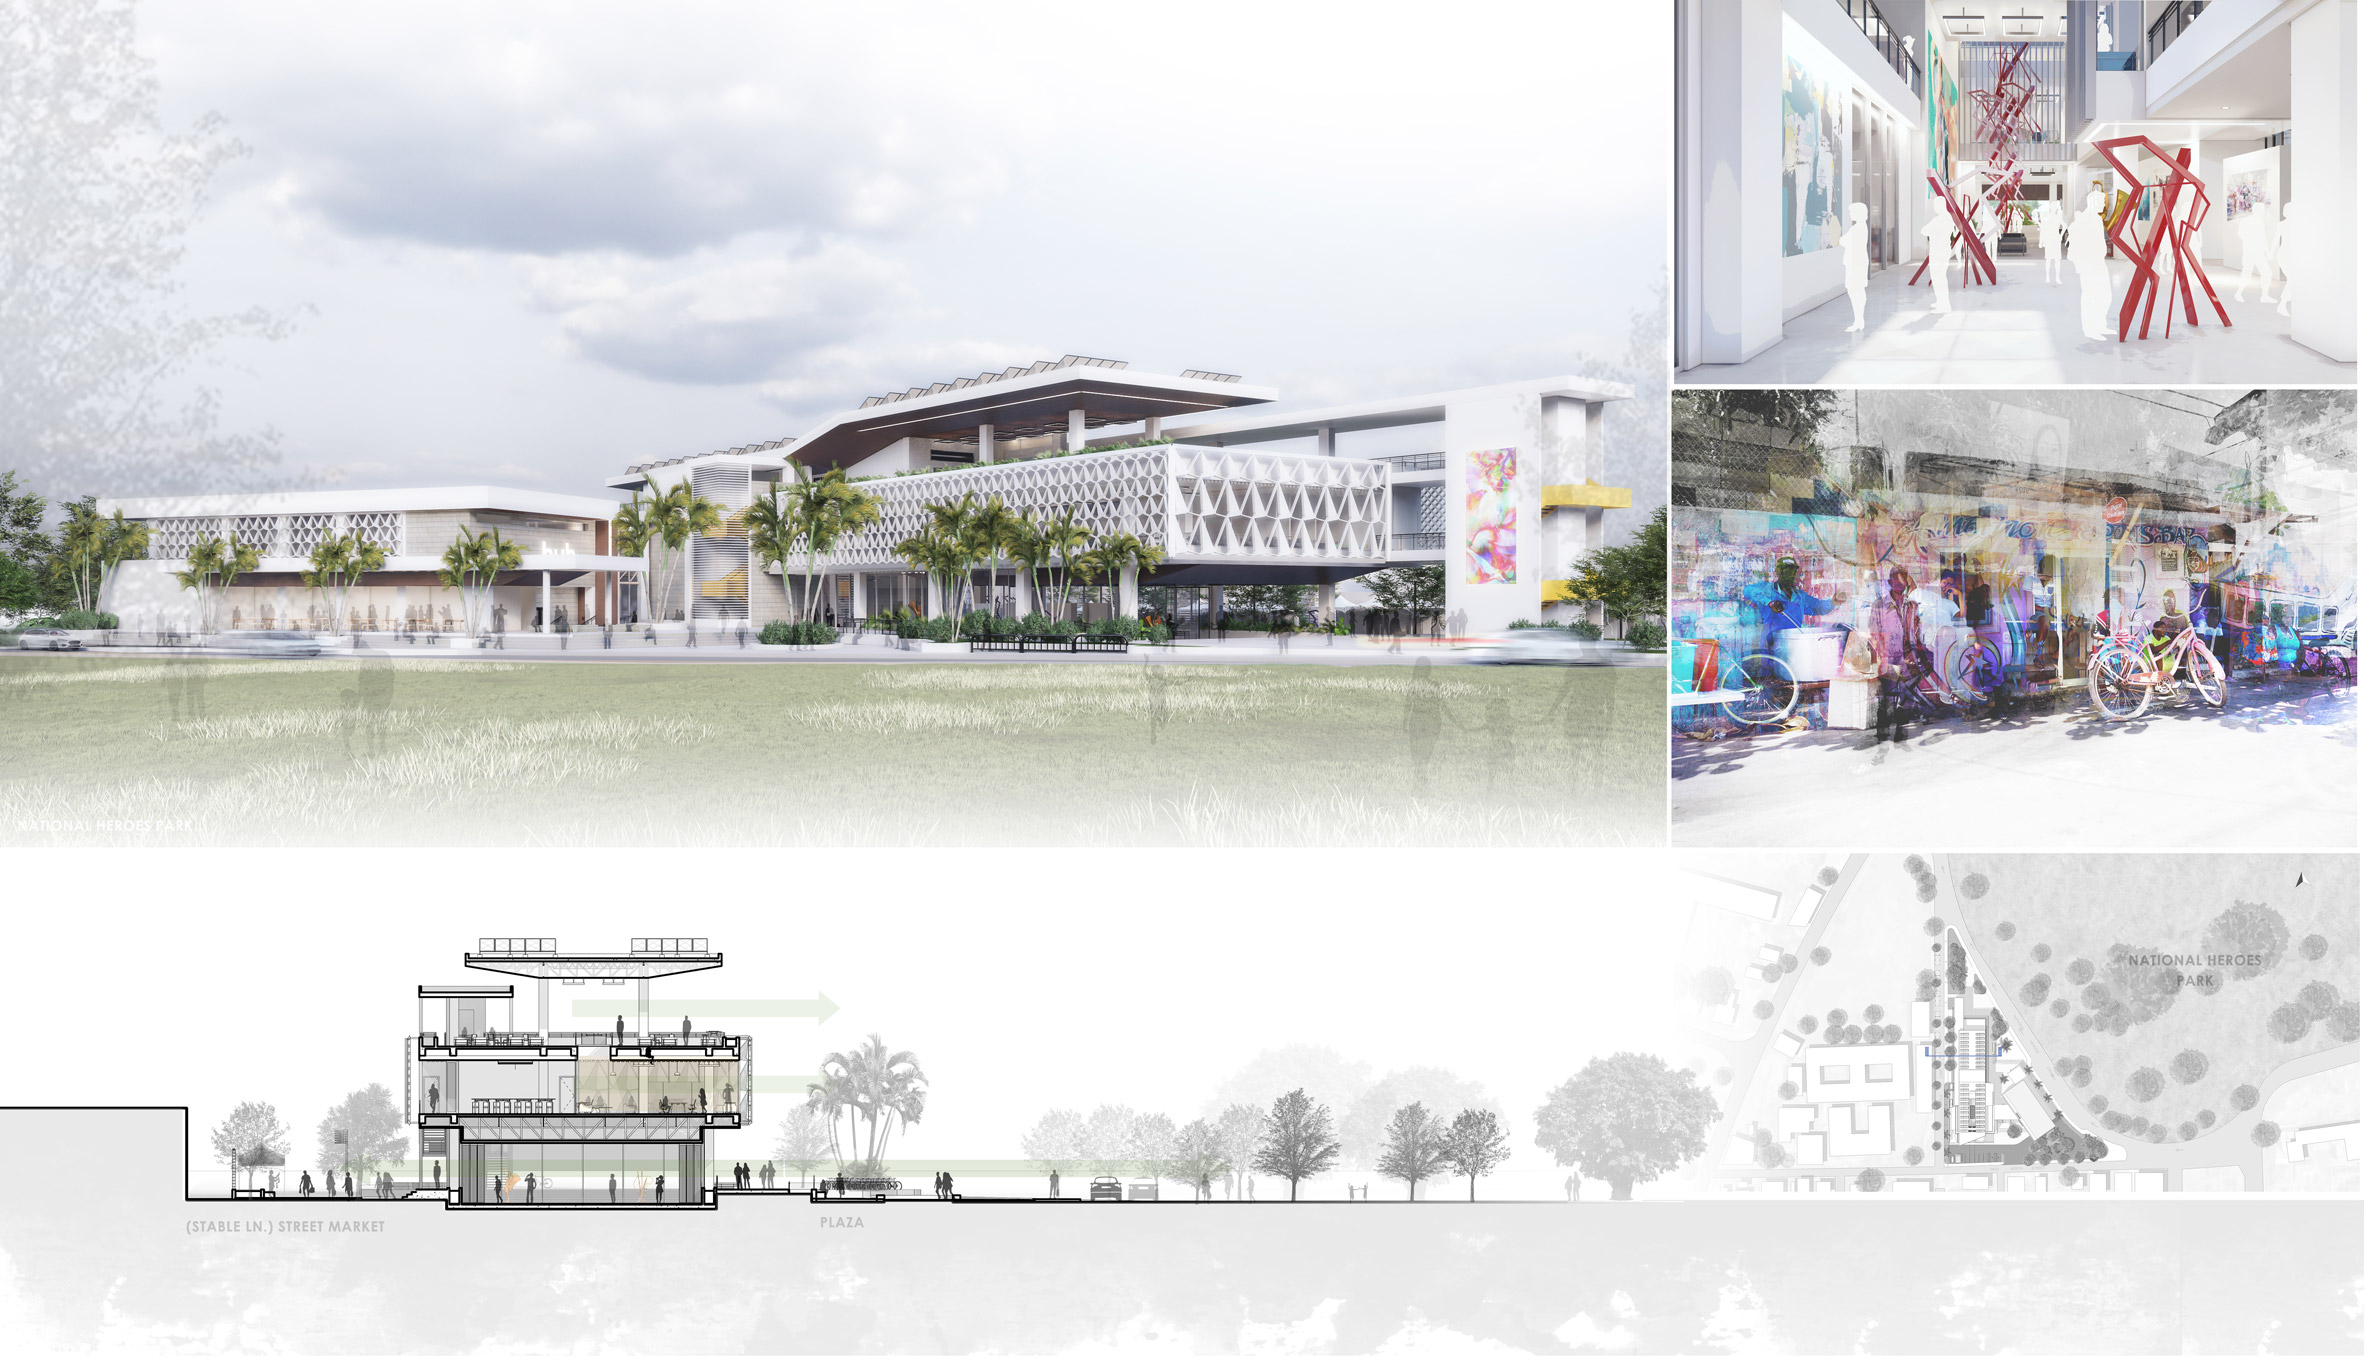 The University of Technology, Jamaica students have designed architecture projects